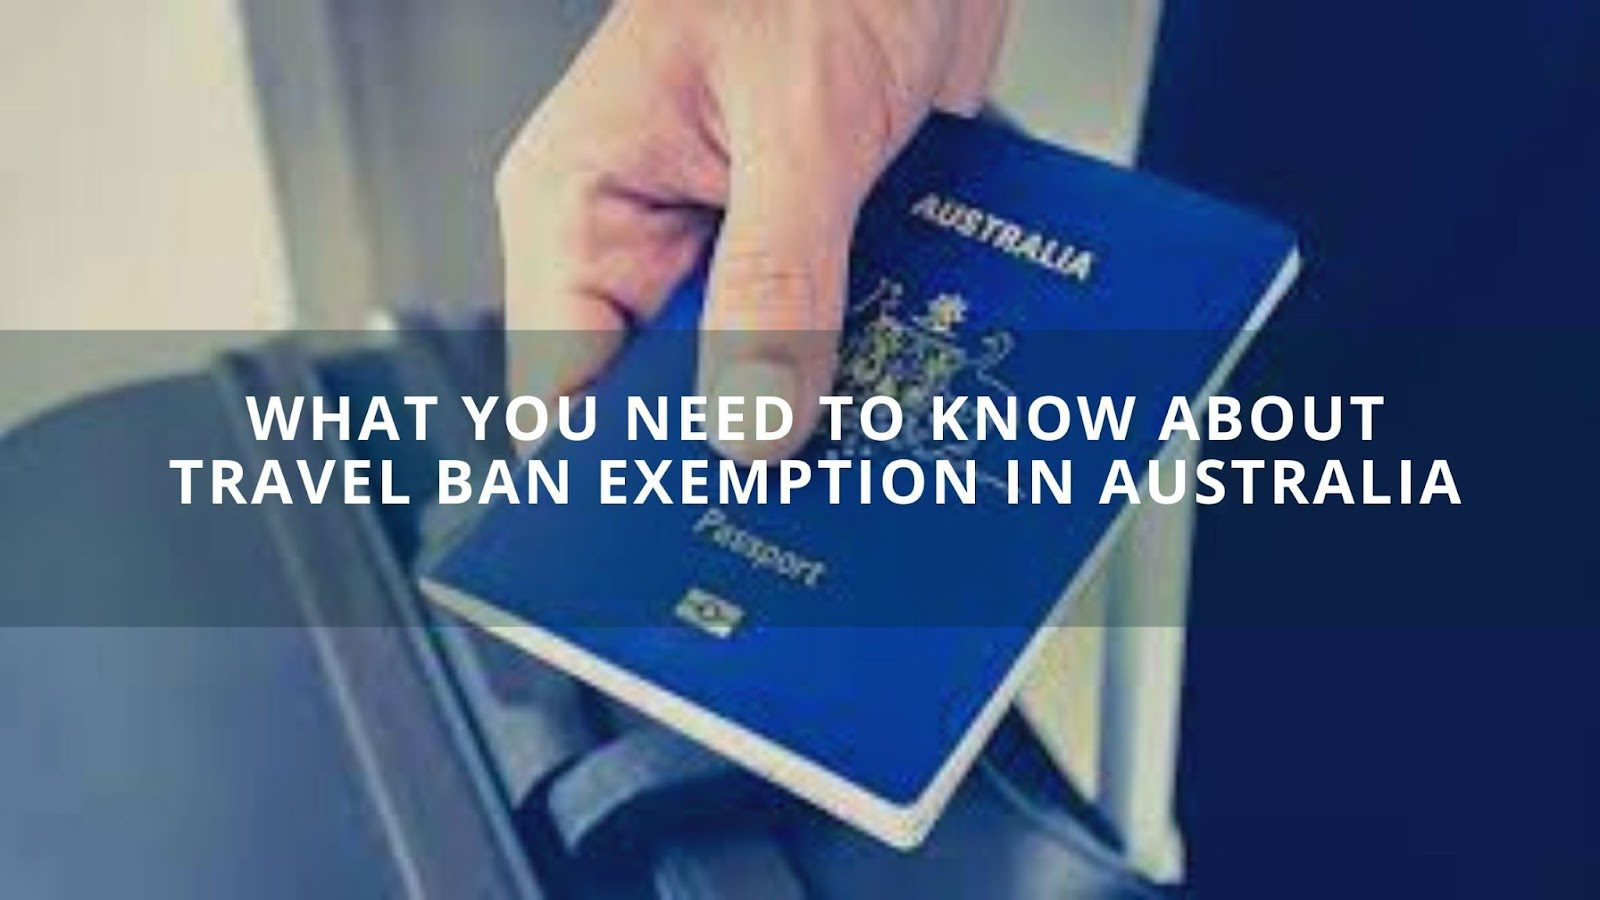 What You Need To Know About Travel Ban Exemption in Australia